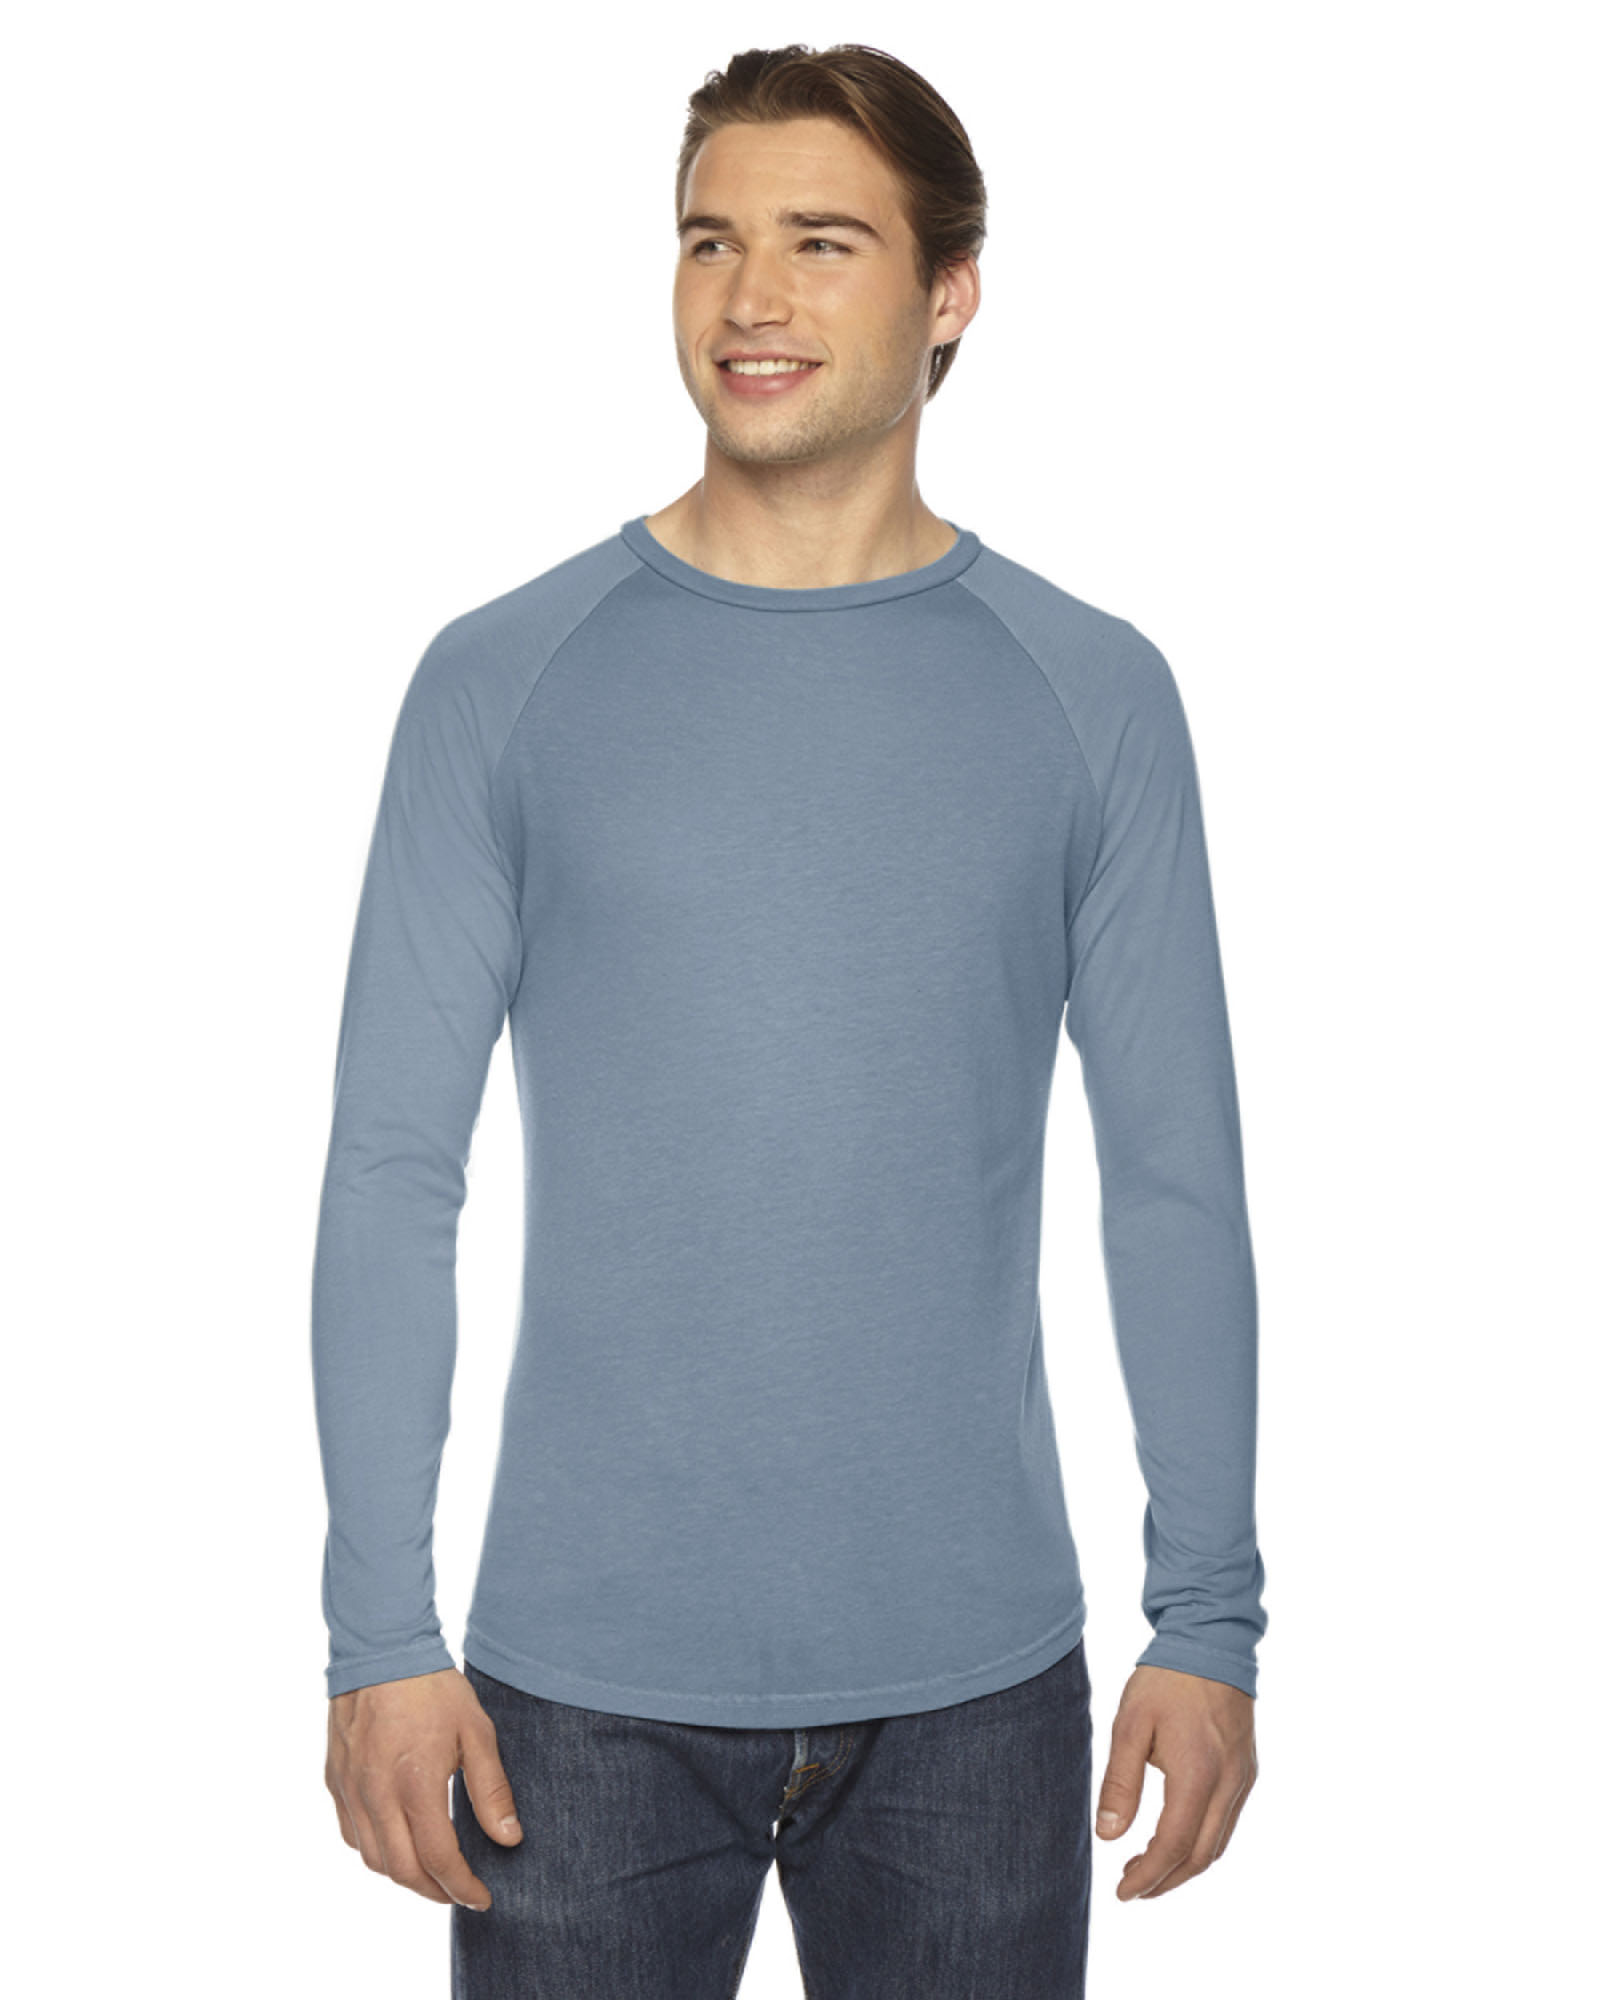 Authentic Pigment AP203 - Men's True Spirit Raglan T-Shirt